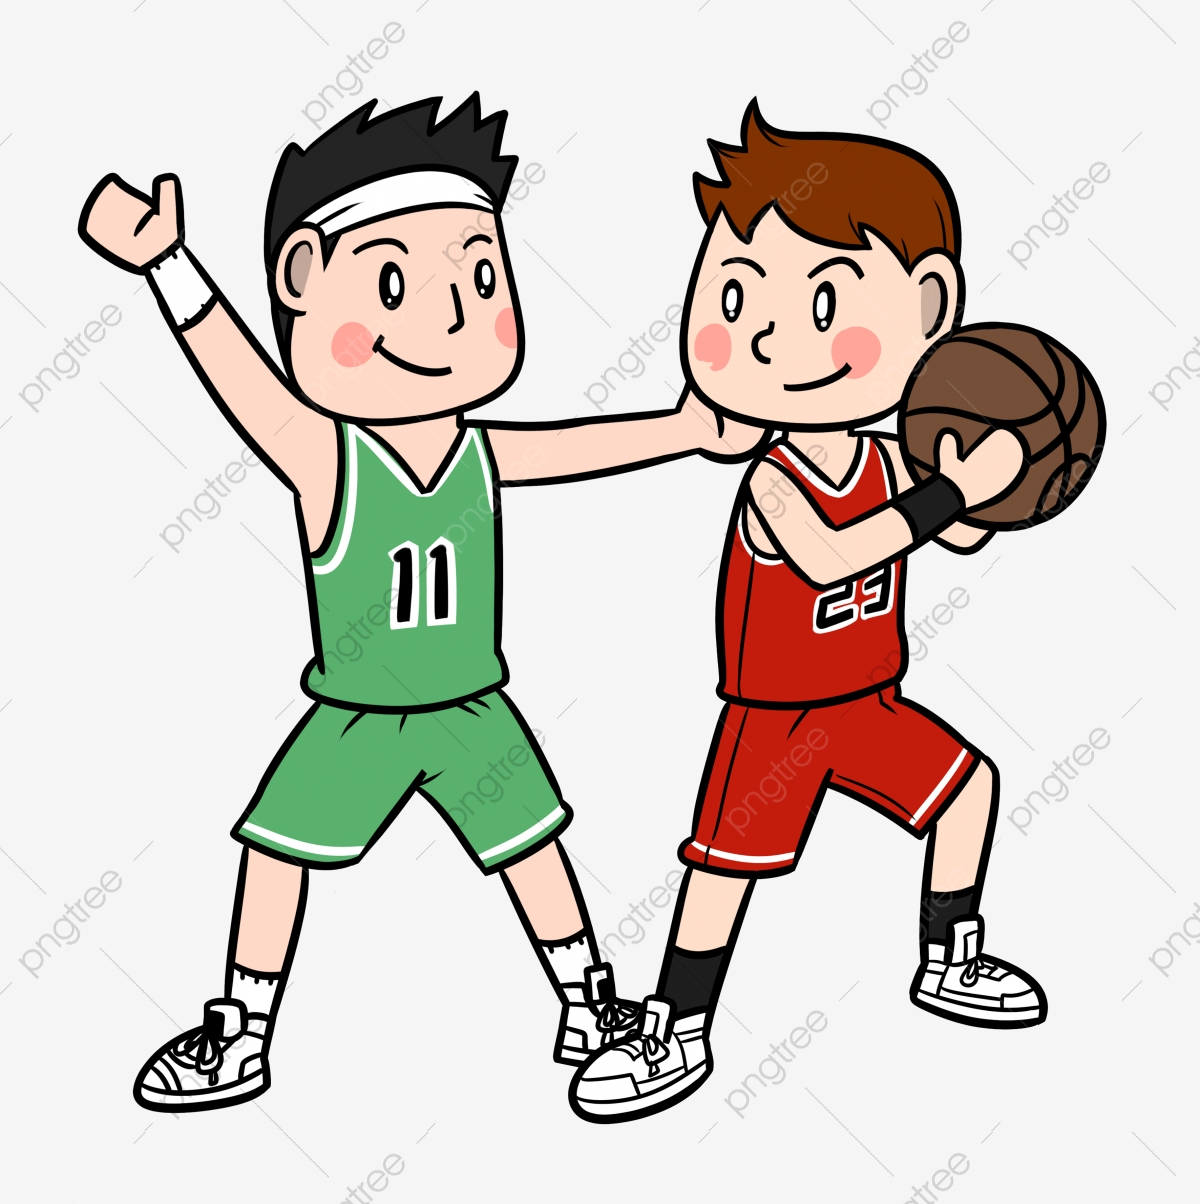 Cartoon Basketball Player Playing Basketball Png Transparent Bottom Cartoon Basketball Basketball Team Png Transparent Clipart Image And Psd File For Free Download